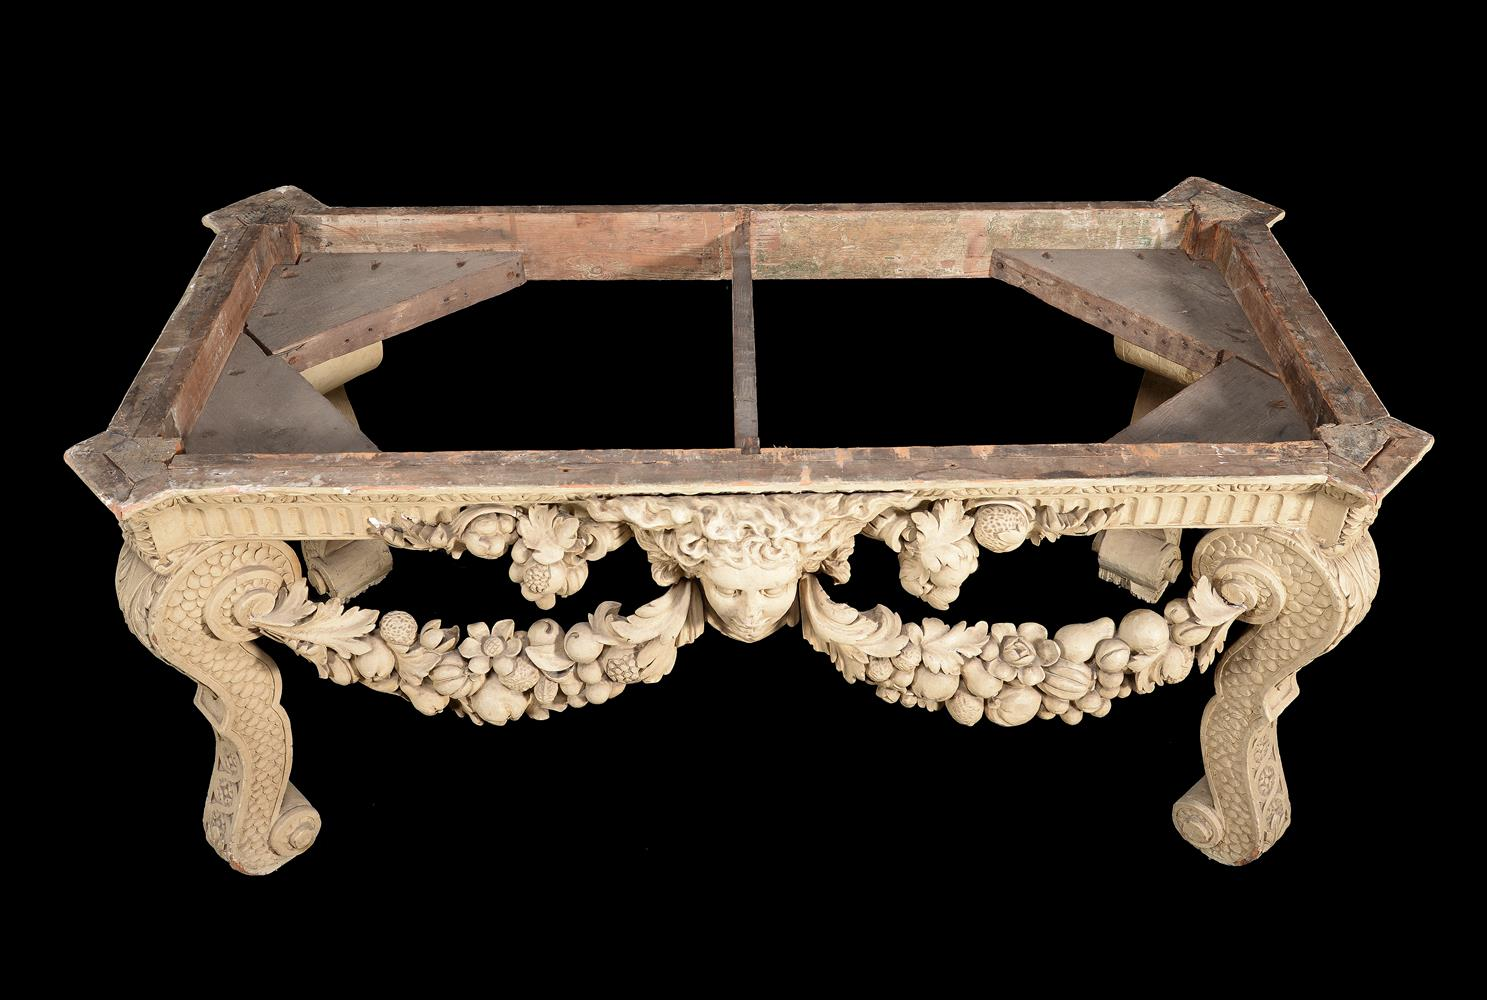 A CREAM PAINTED CARVED WOOD CONSOLE TABLE, IN THE MANNER OF WILLIAM KENT - Image 6 of 9